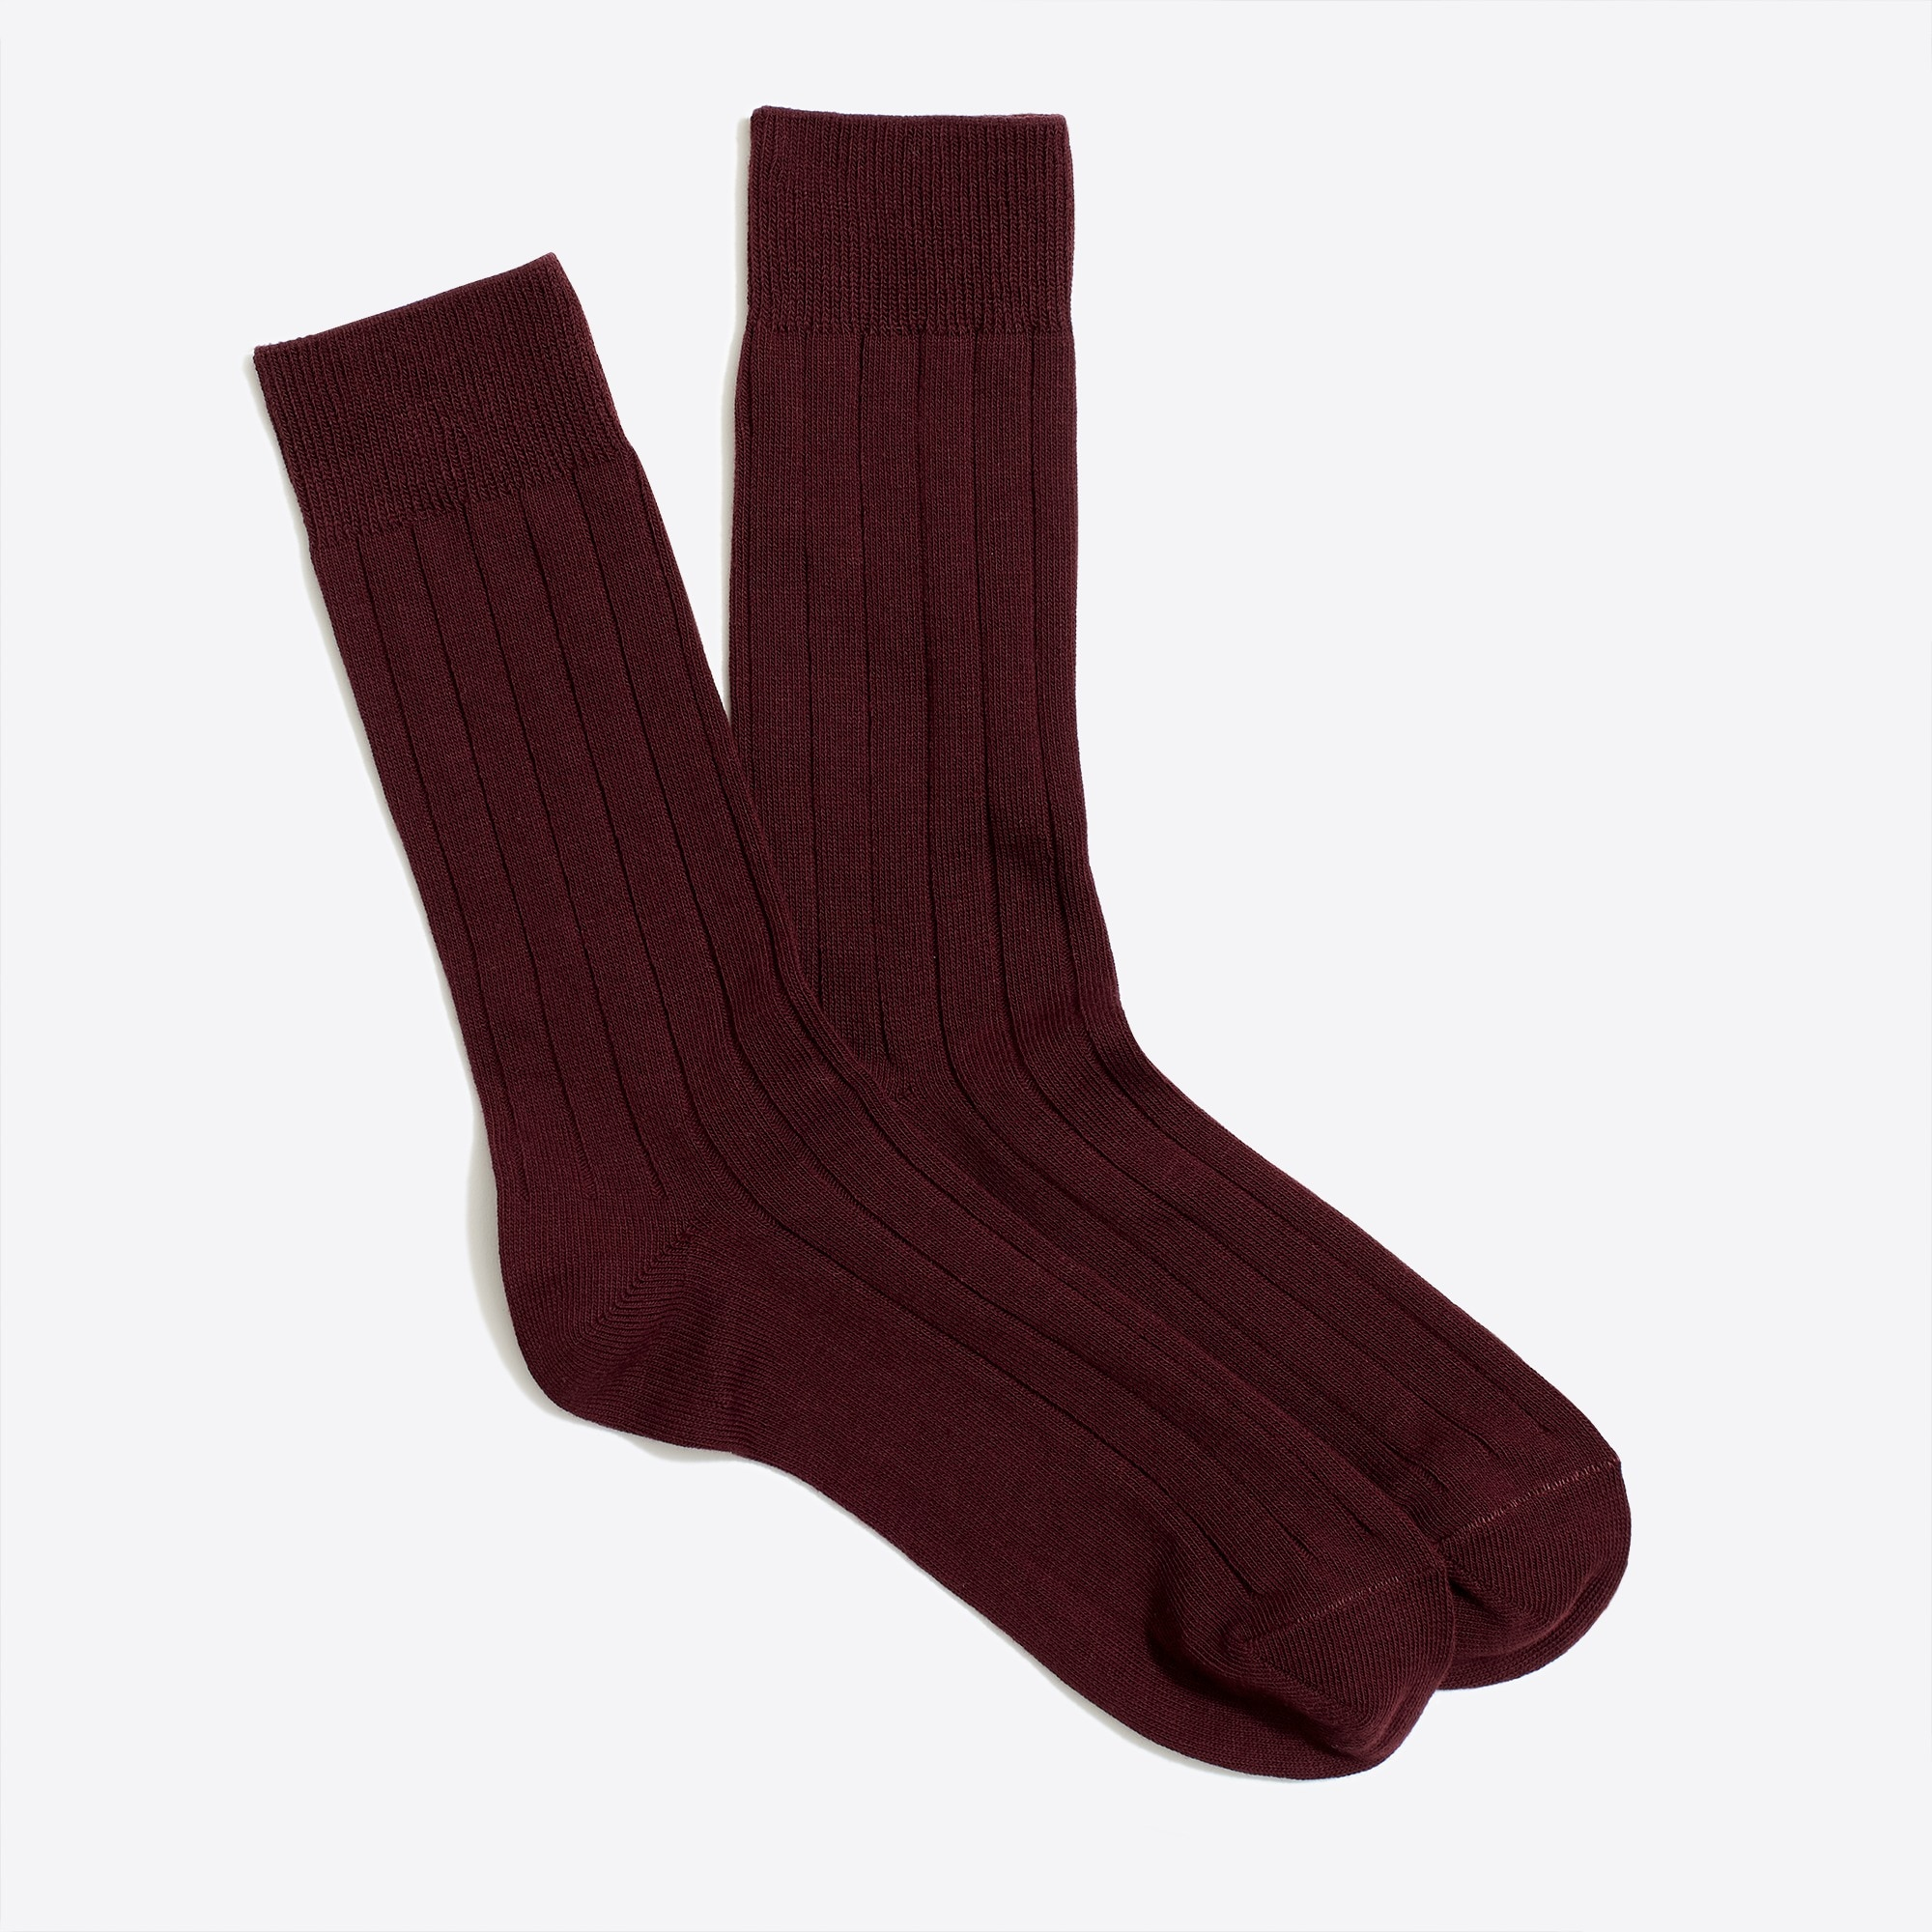 solid color socks : factorymen solid socks